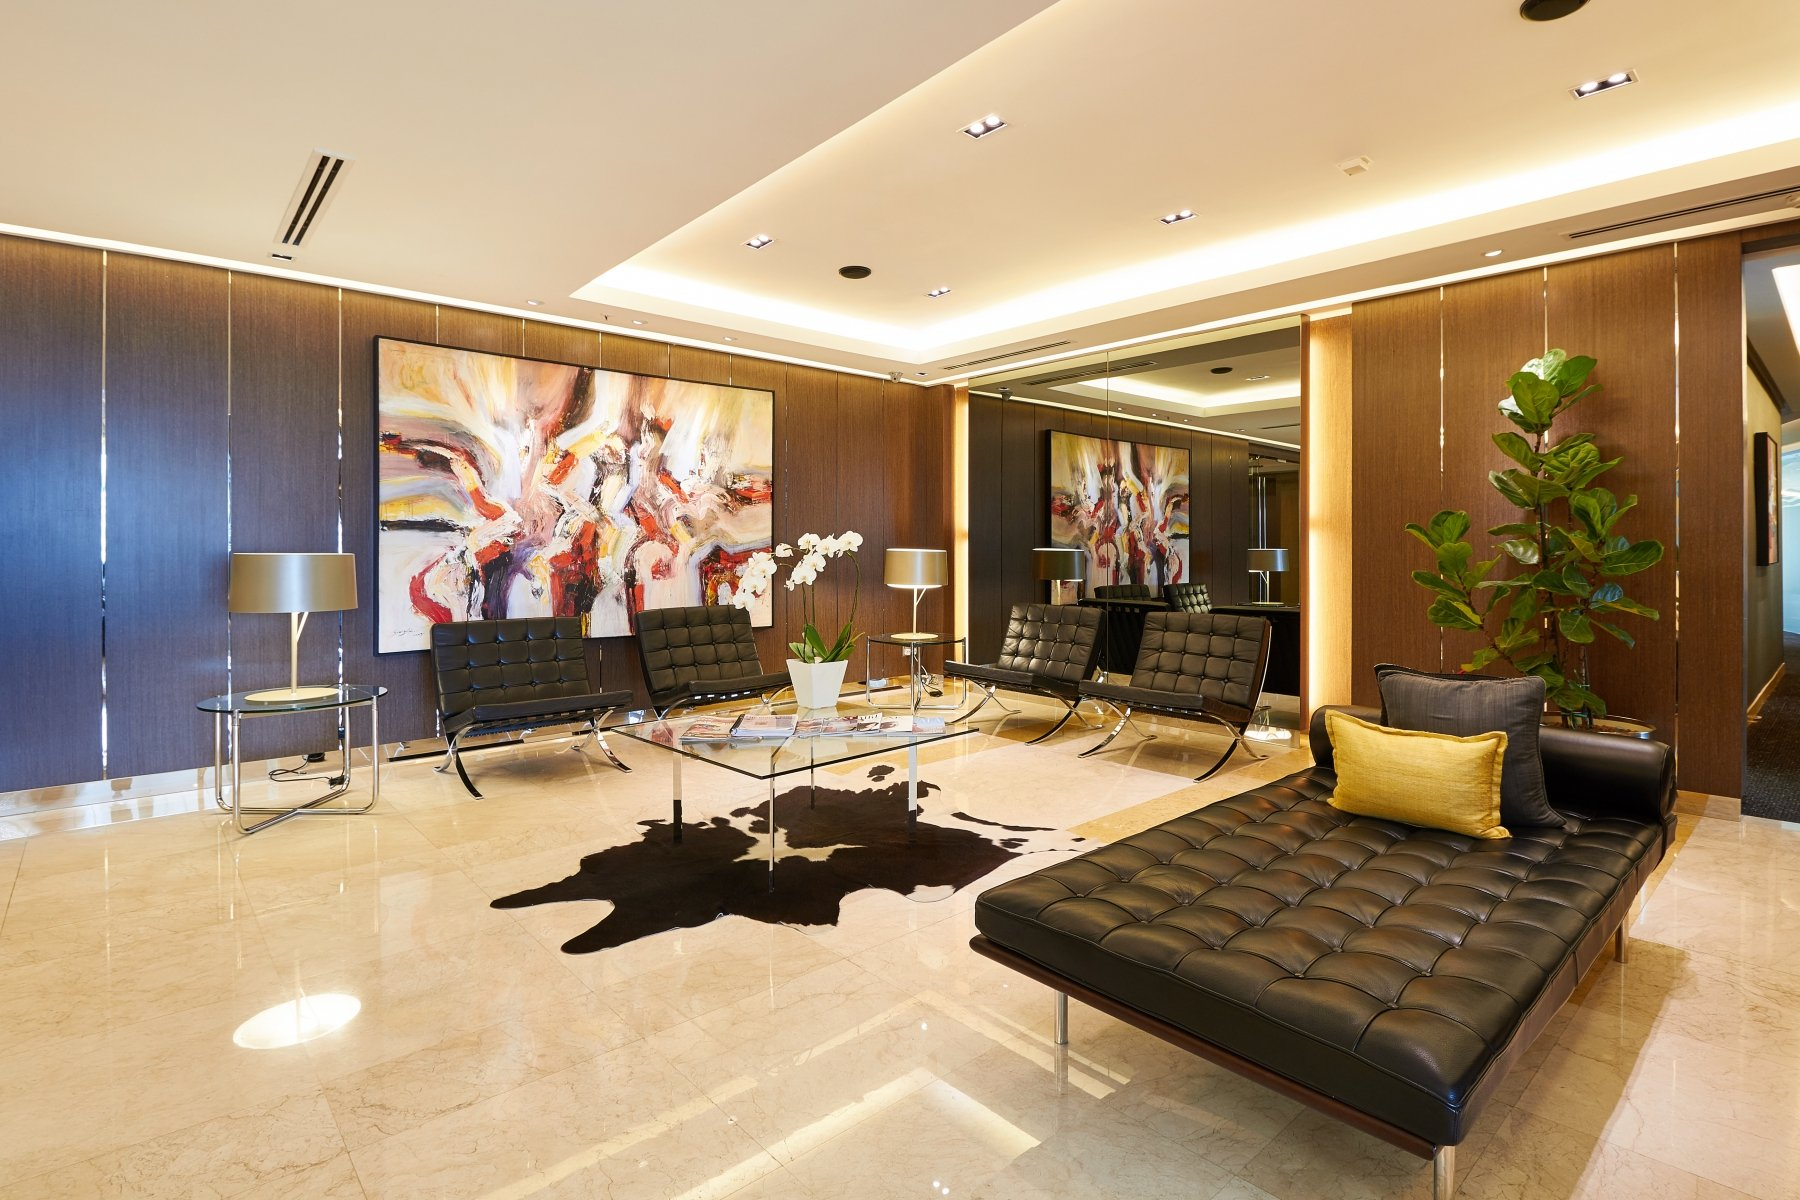 SERVICED OFFICE BY CEO SUITE MENARA MAXIS 36TH KUALA LUMPUR, MALAYSIA 152